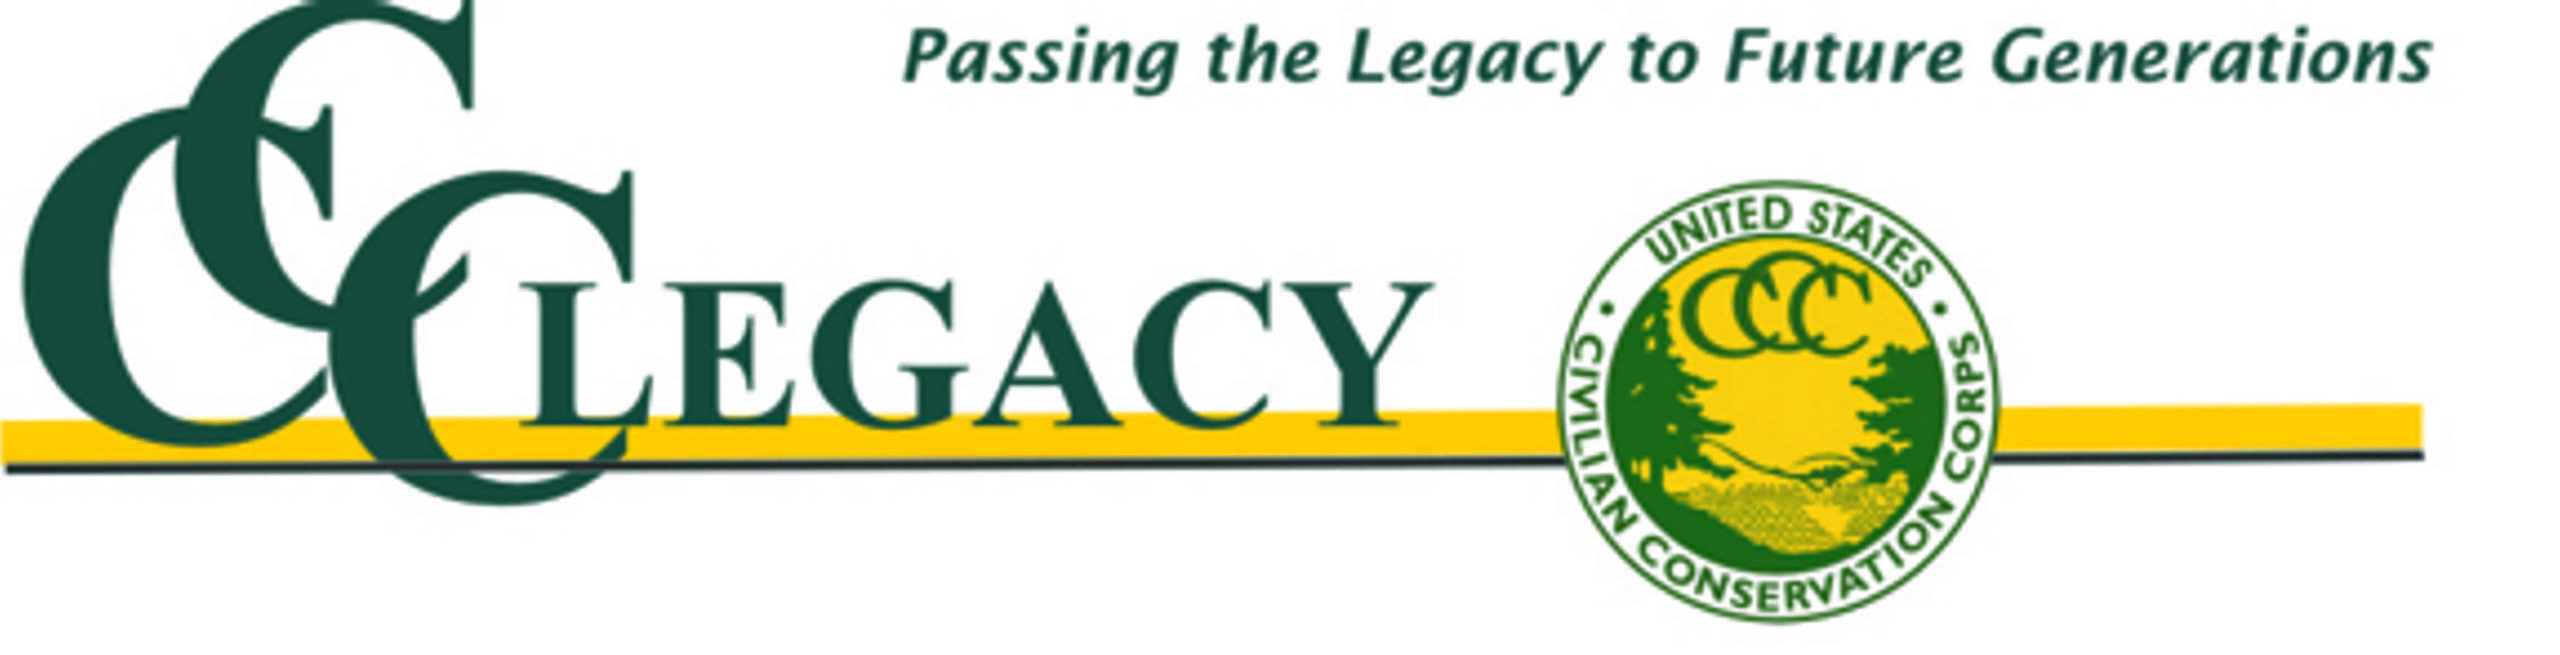 Civilian Conservation Corps Legacy